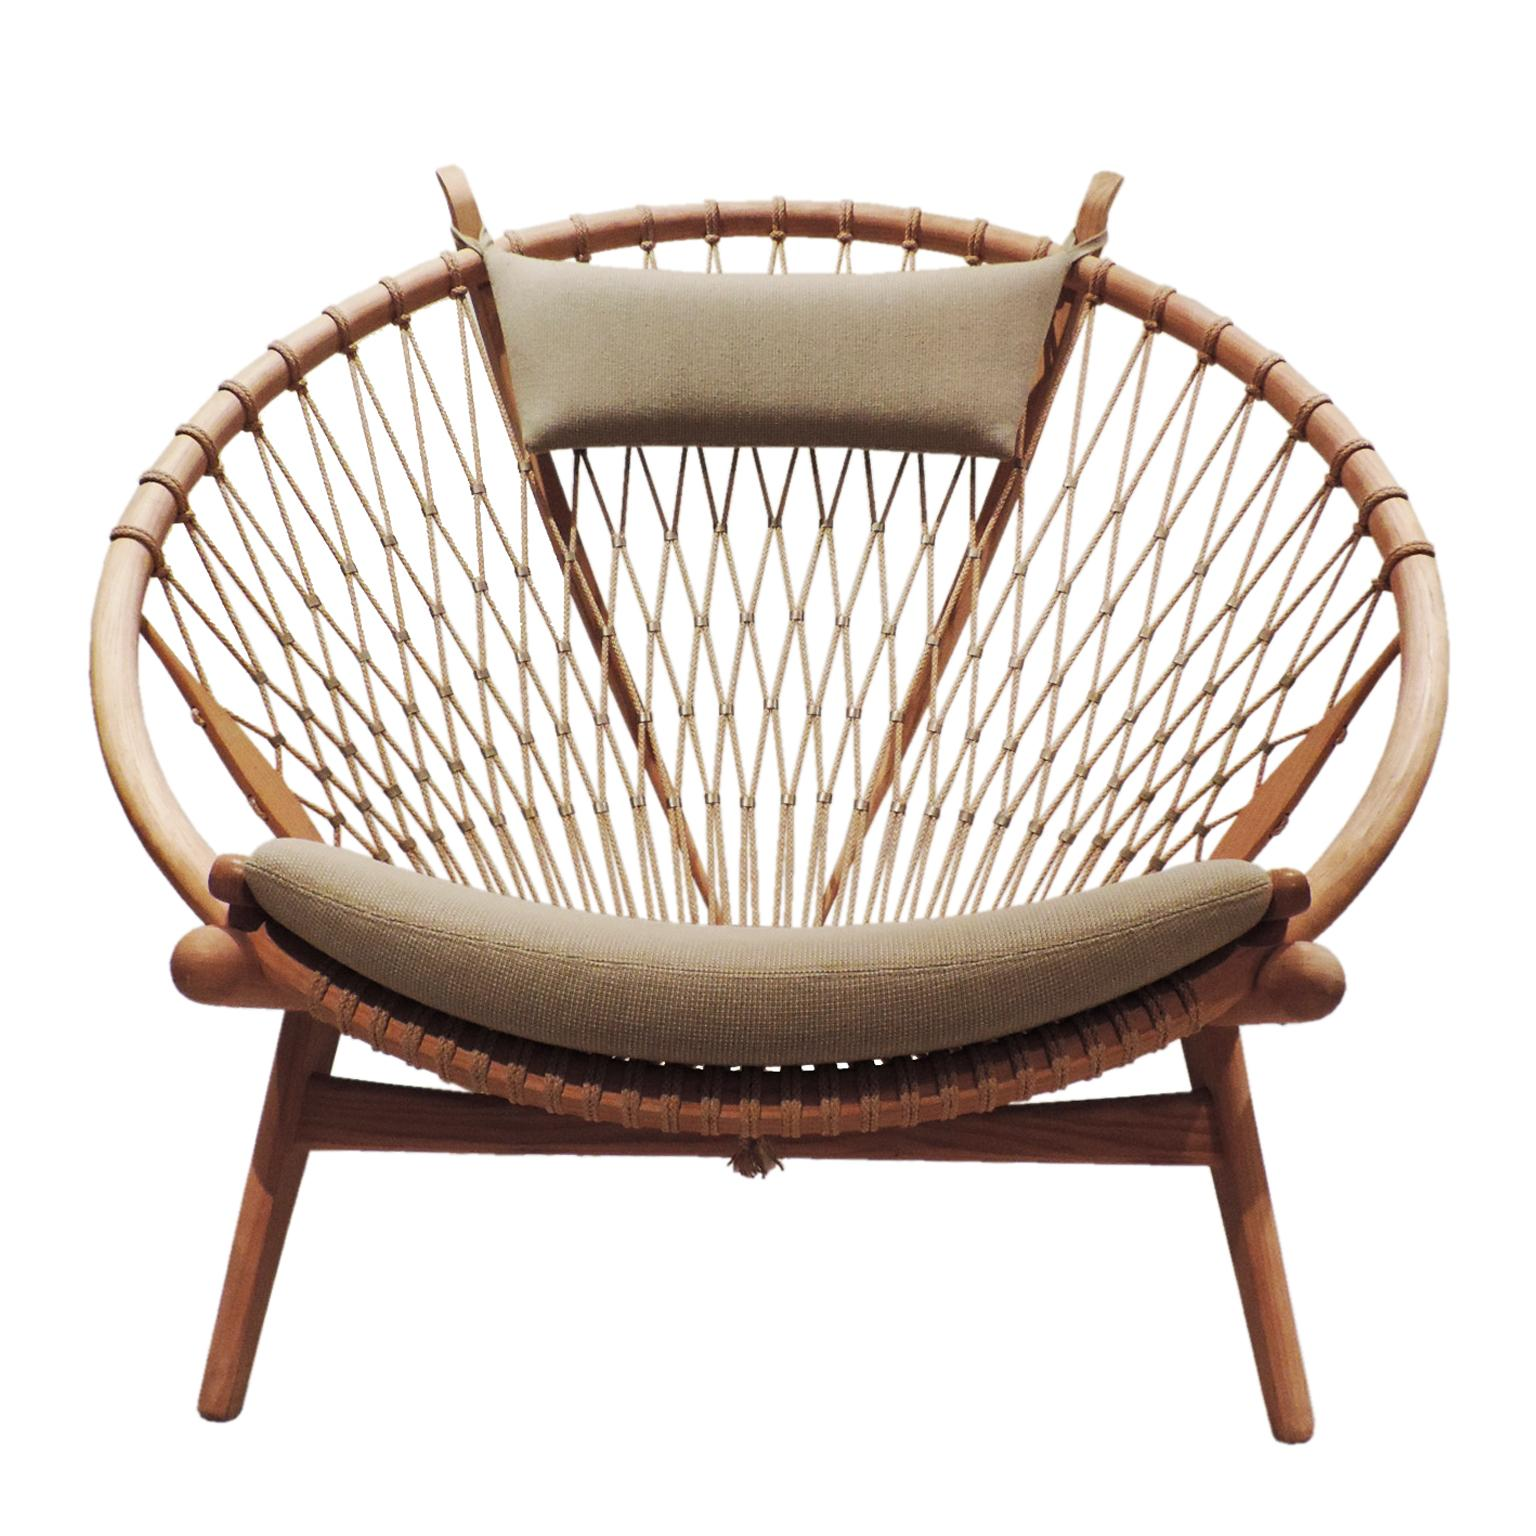 Early Hans J. Wegner PP130 Circle Chair  sc 1 st  1stDibs & The Circle Chair by Hans J. Wegner For Sale at 1stdibs